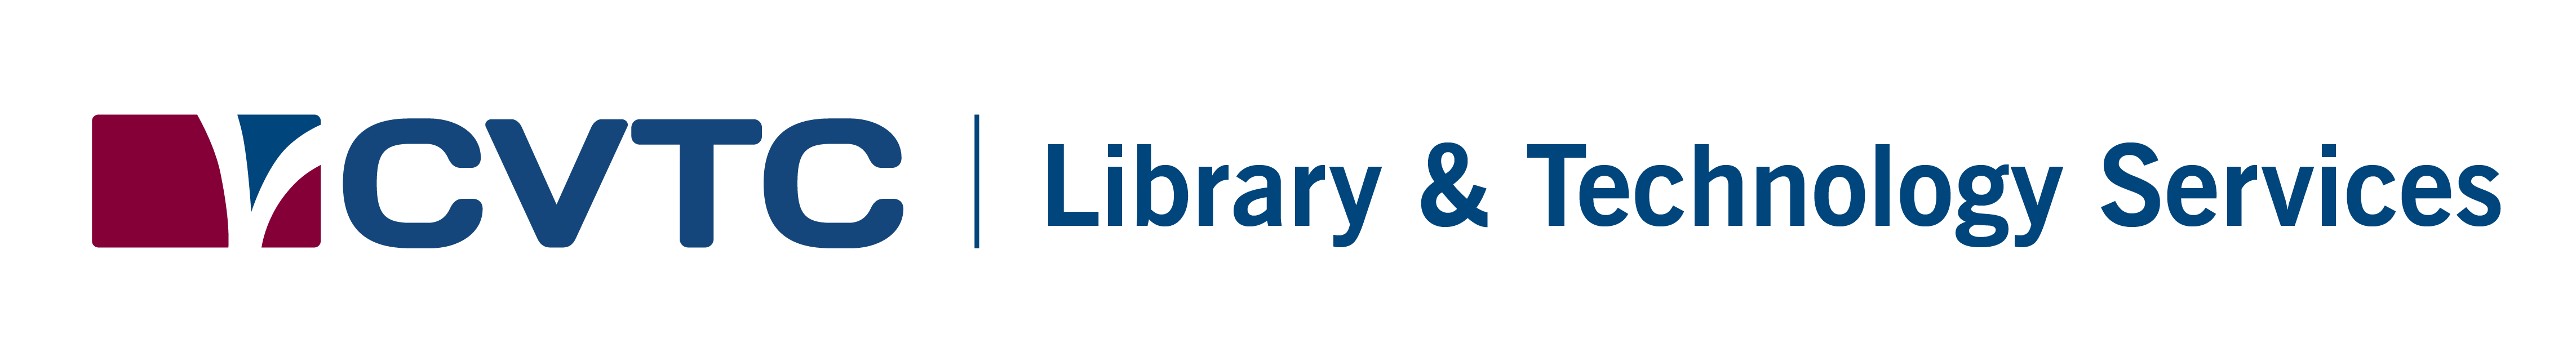 CVTC Library & Technology Services logo